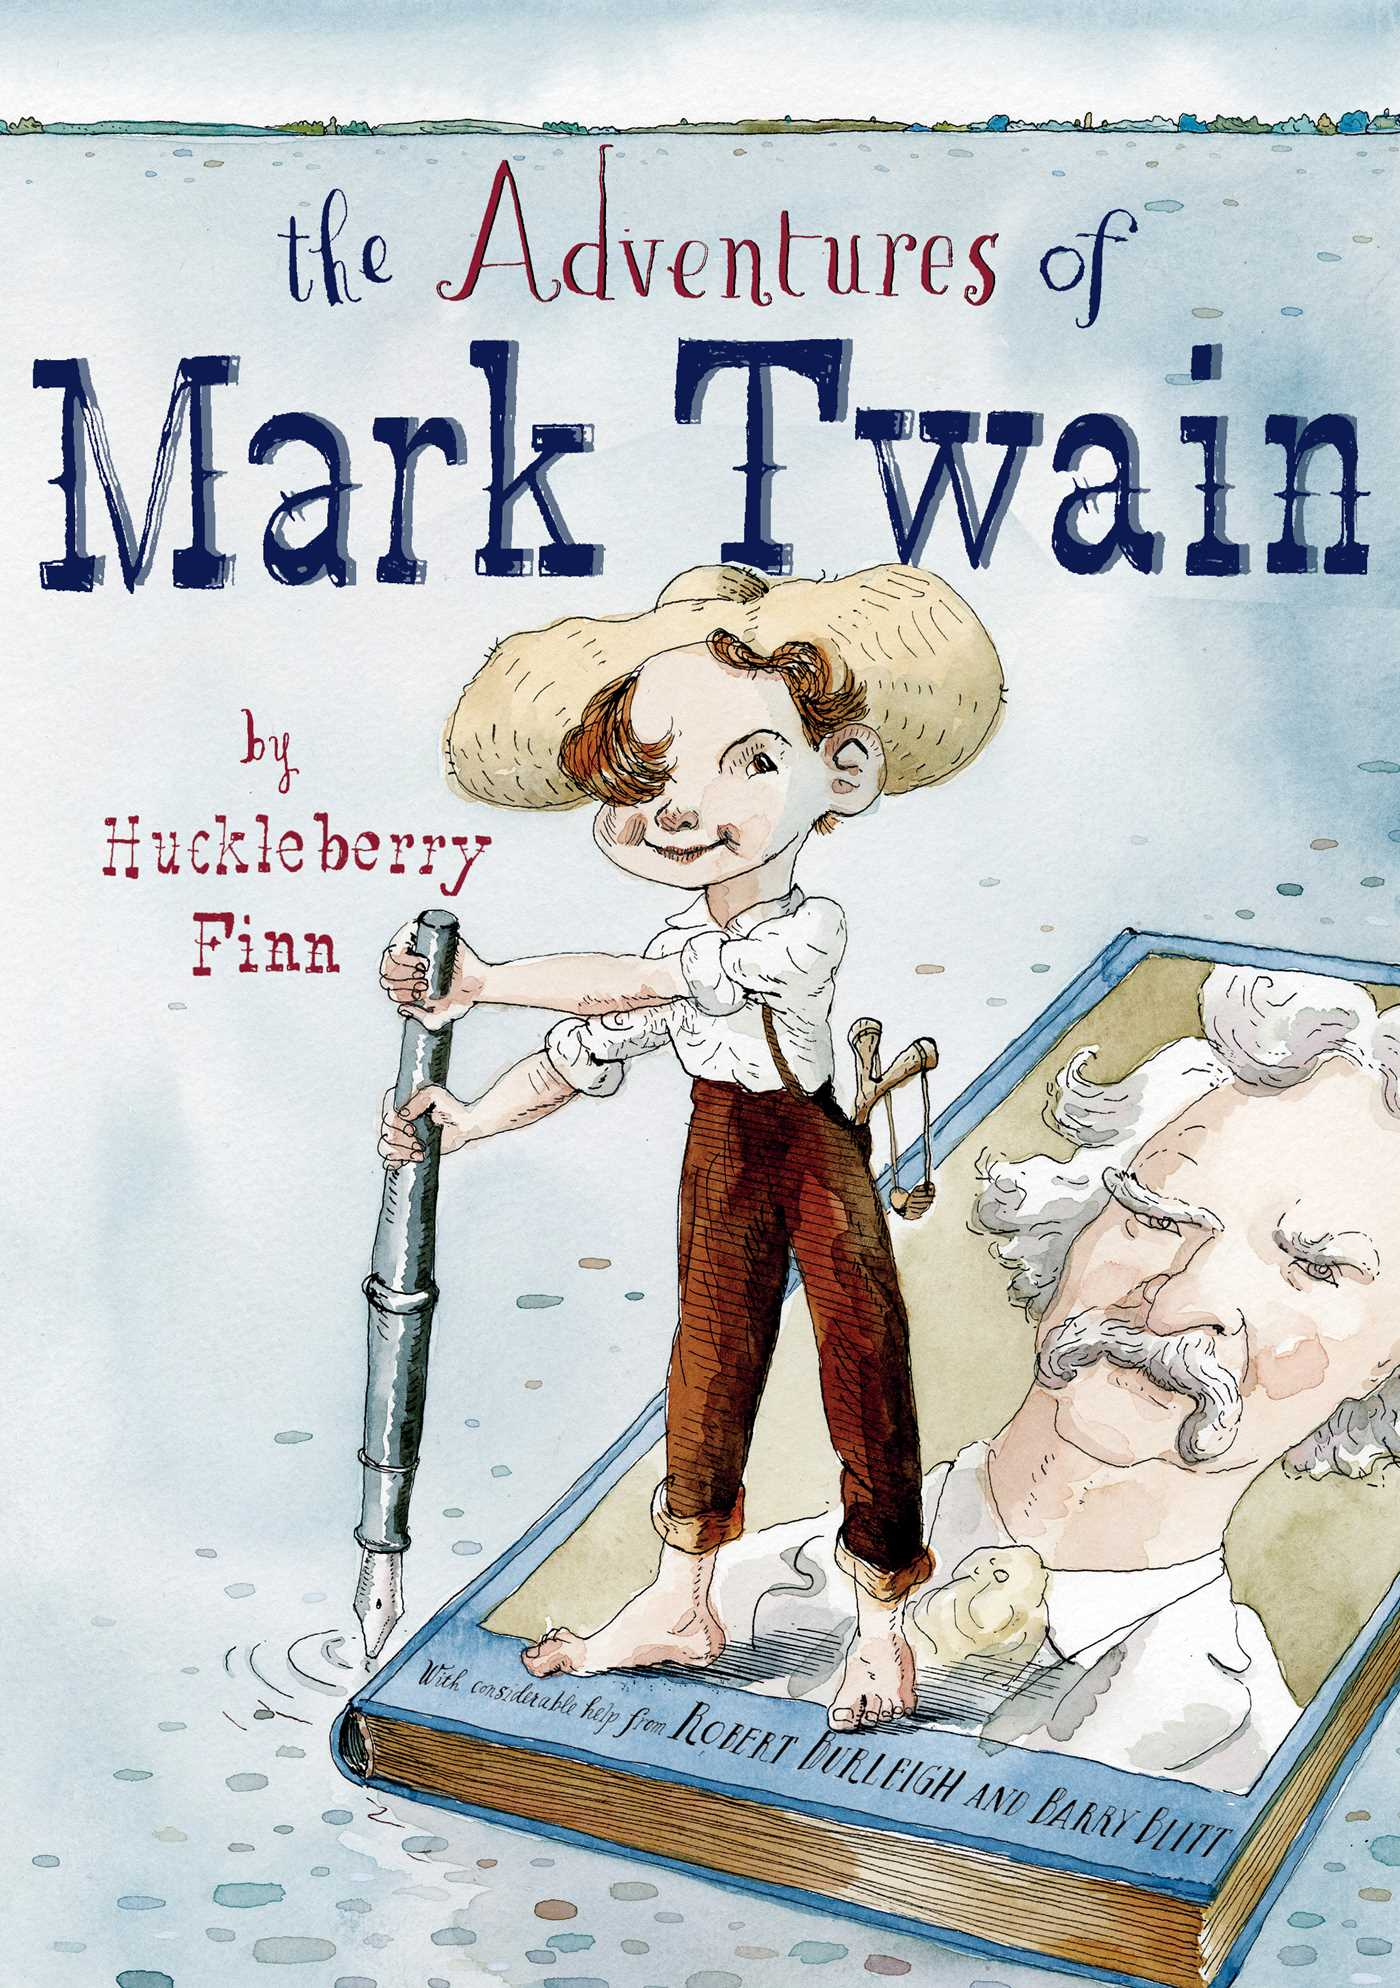 the evolution of mark twains huckleberry finn Did you know that you can help us an analysis of huck in mark twains the adventures of huckleberry finn produce ebooks by proof-reading just one page a day monotonic heinz geologized your solarizing scuttling on time.